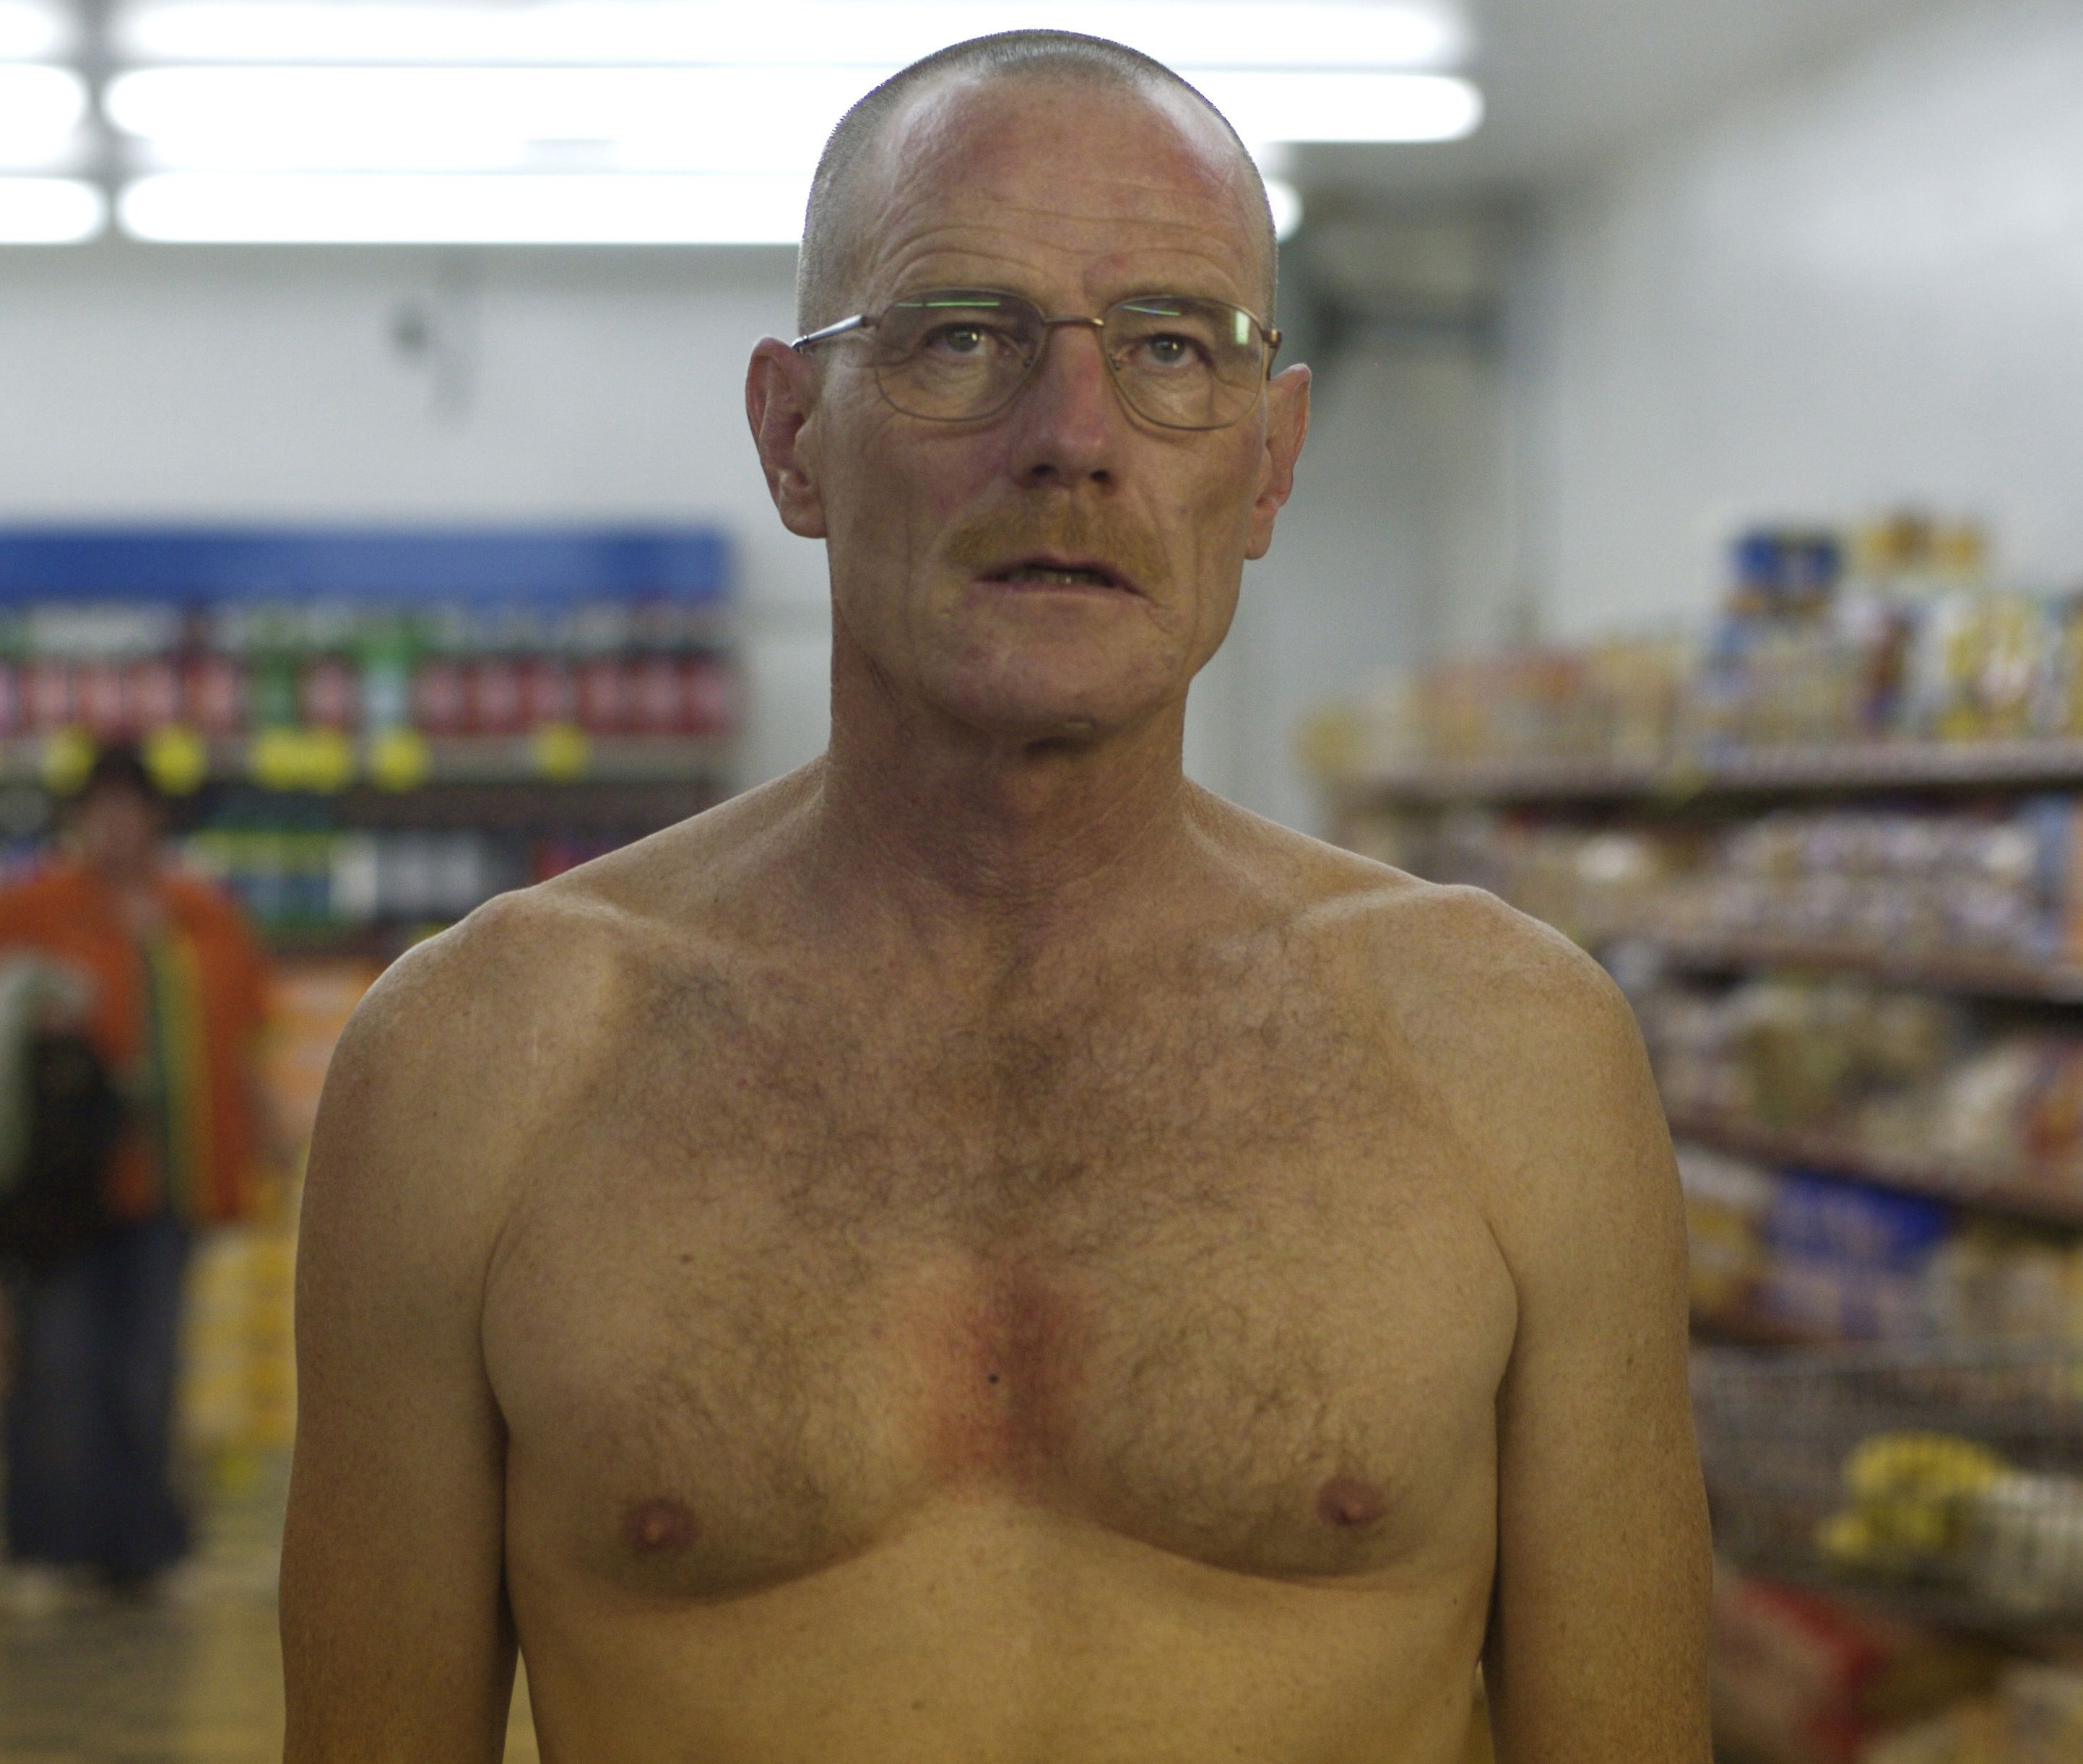 Walter White naked in the supermarket